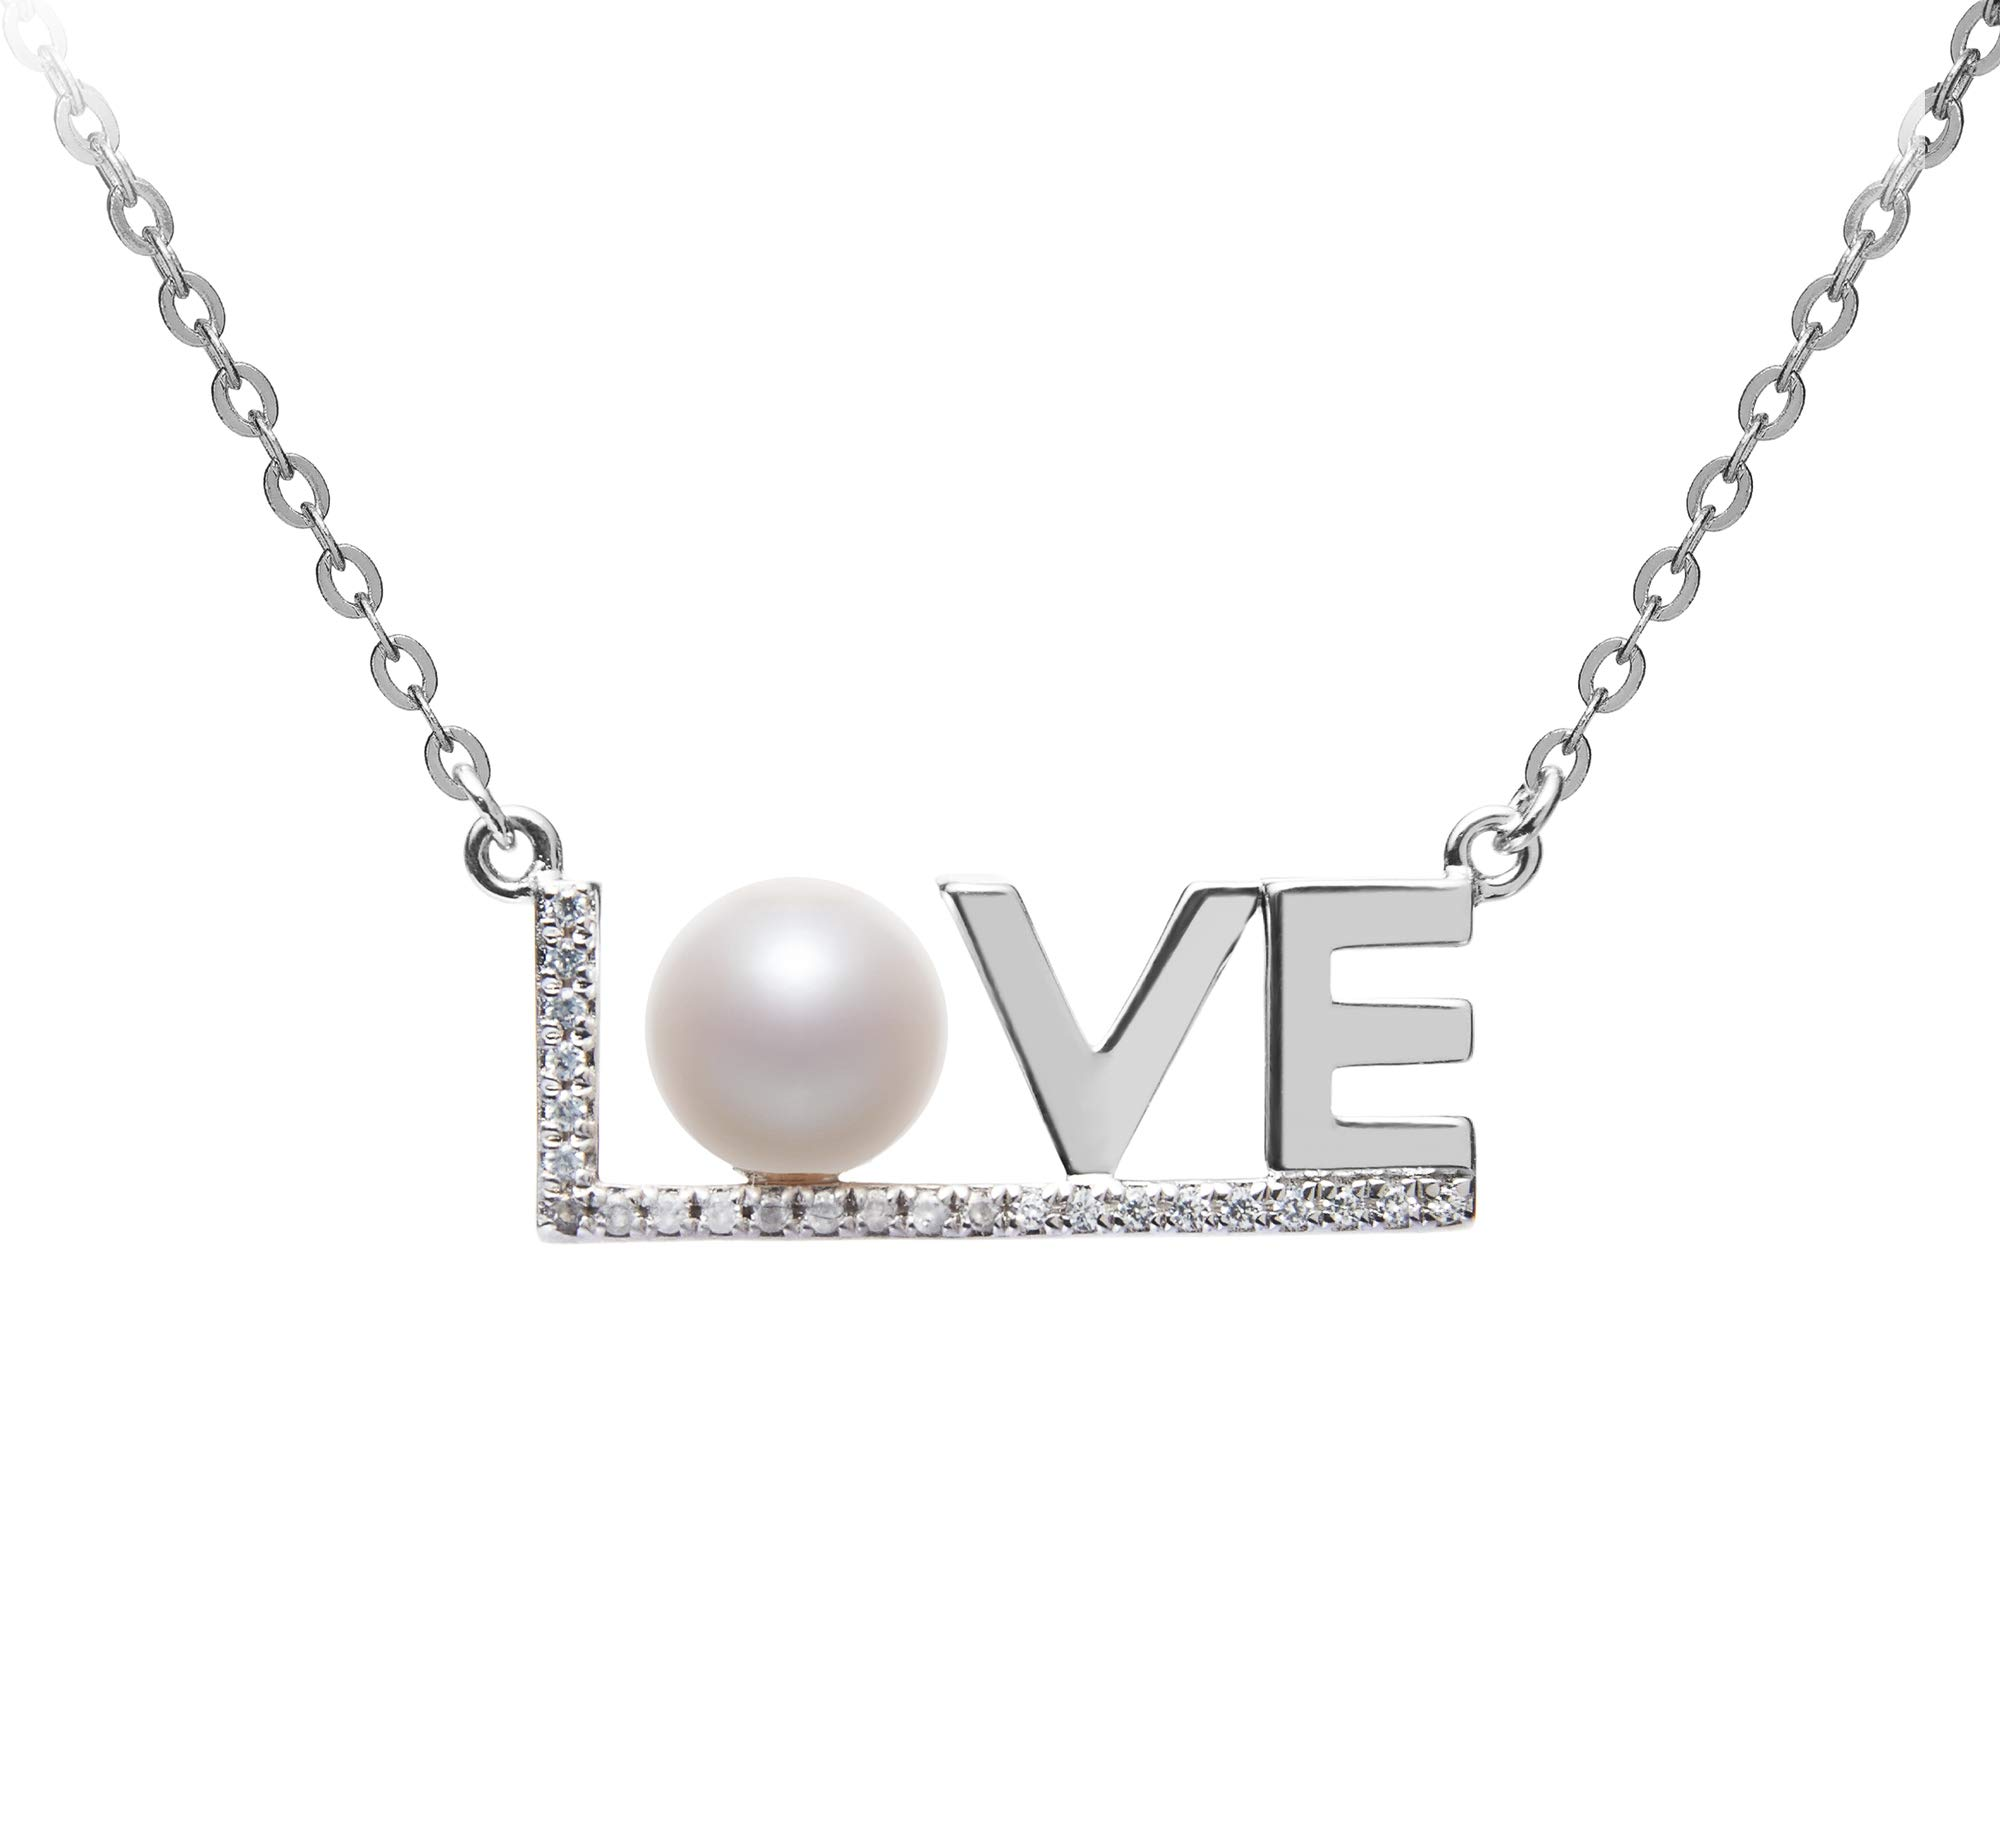 LOVE White 6-7mm AAAA Quality Freshwater 925 Sterling Silver Cultured Pearl Necklace For Women